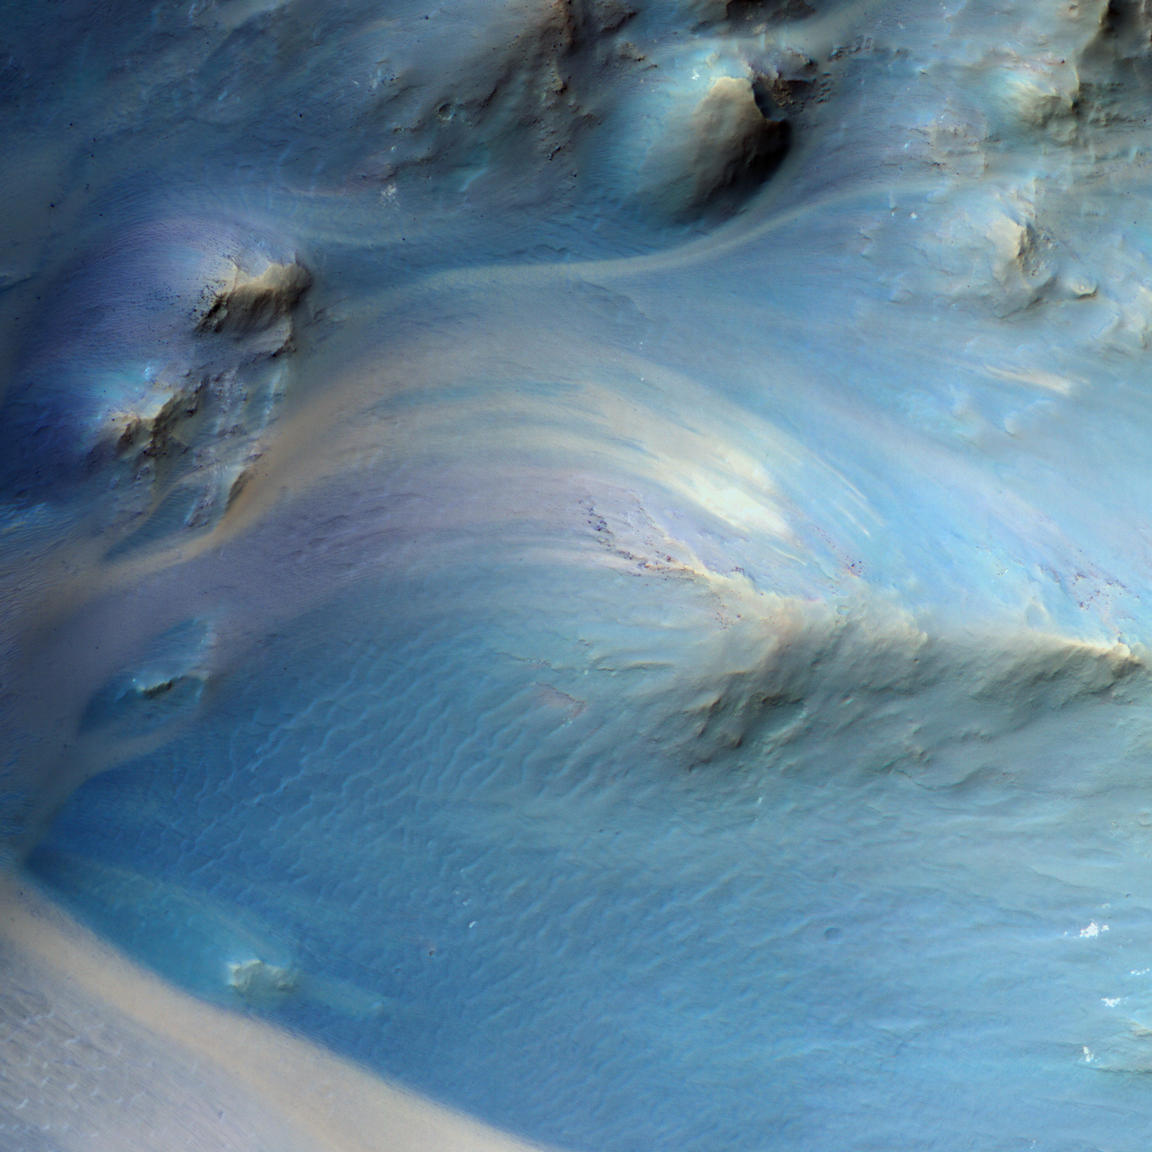 This is an image of a central pit of an impact crater in the Martian ancient highlands.